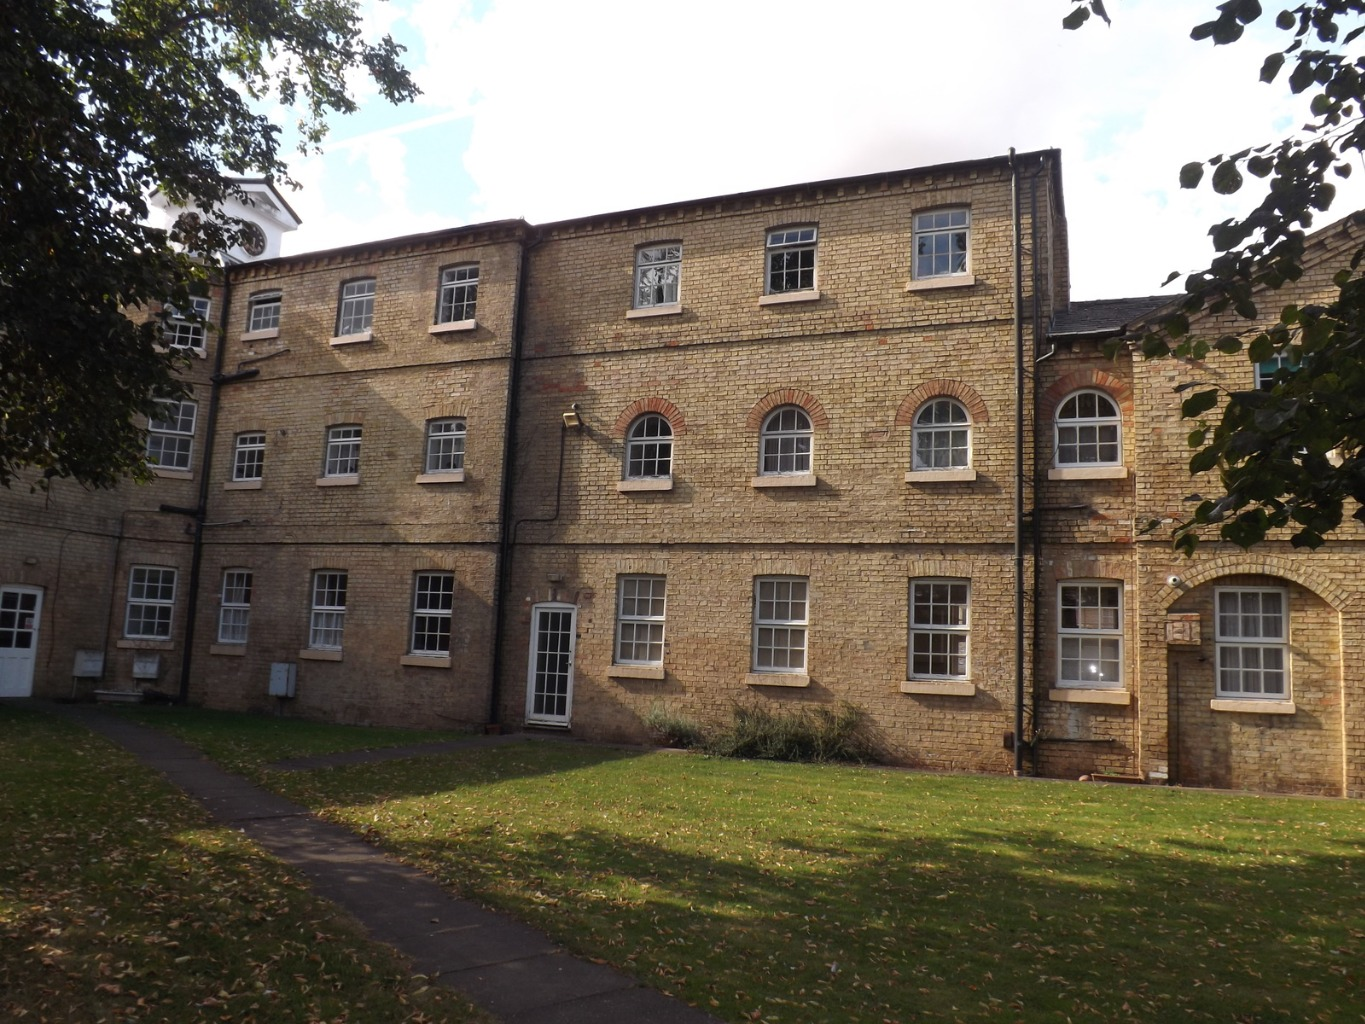 1 bed flat for sale in The White House, St. Neots Road, St. Neots  - Property Image 1